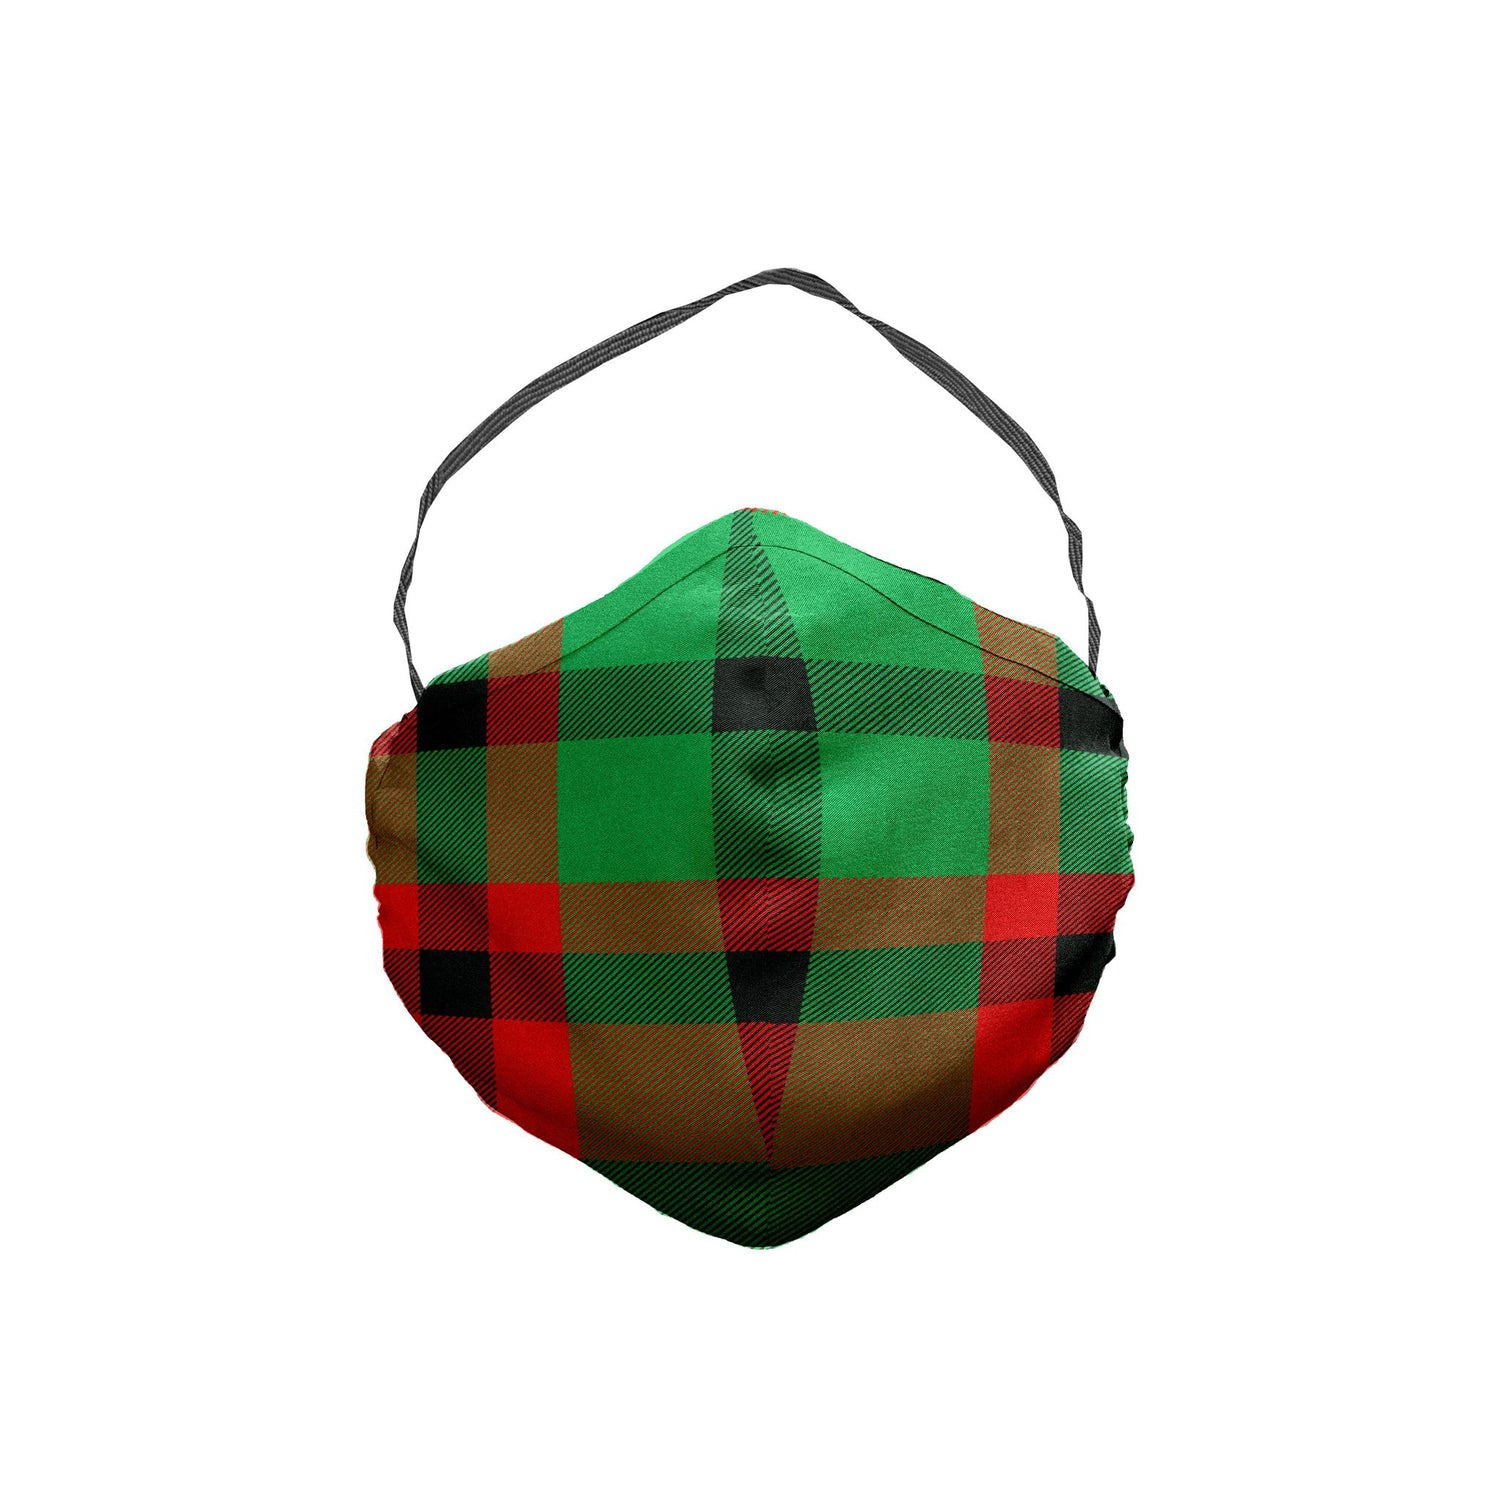 The Red, Black and Green Plaid Face Mask 5 Pack